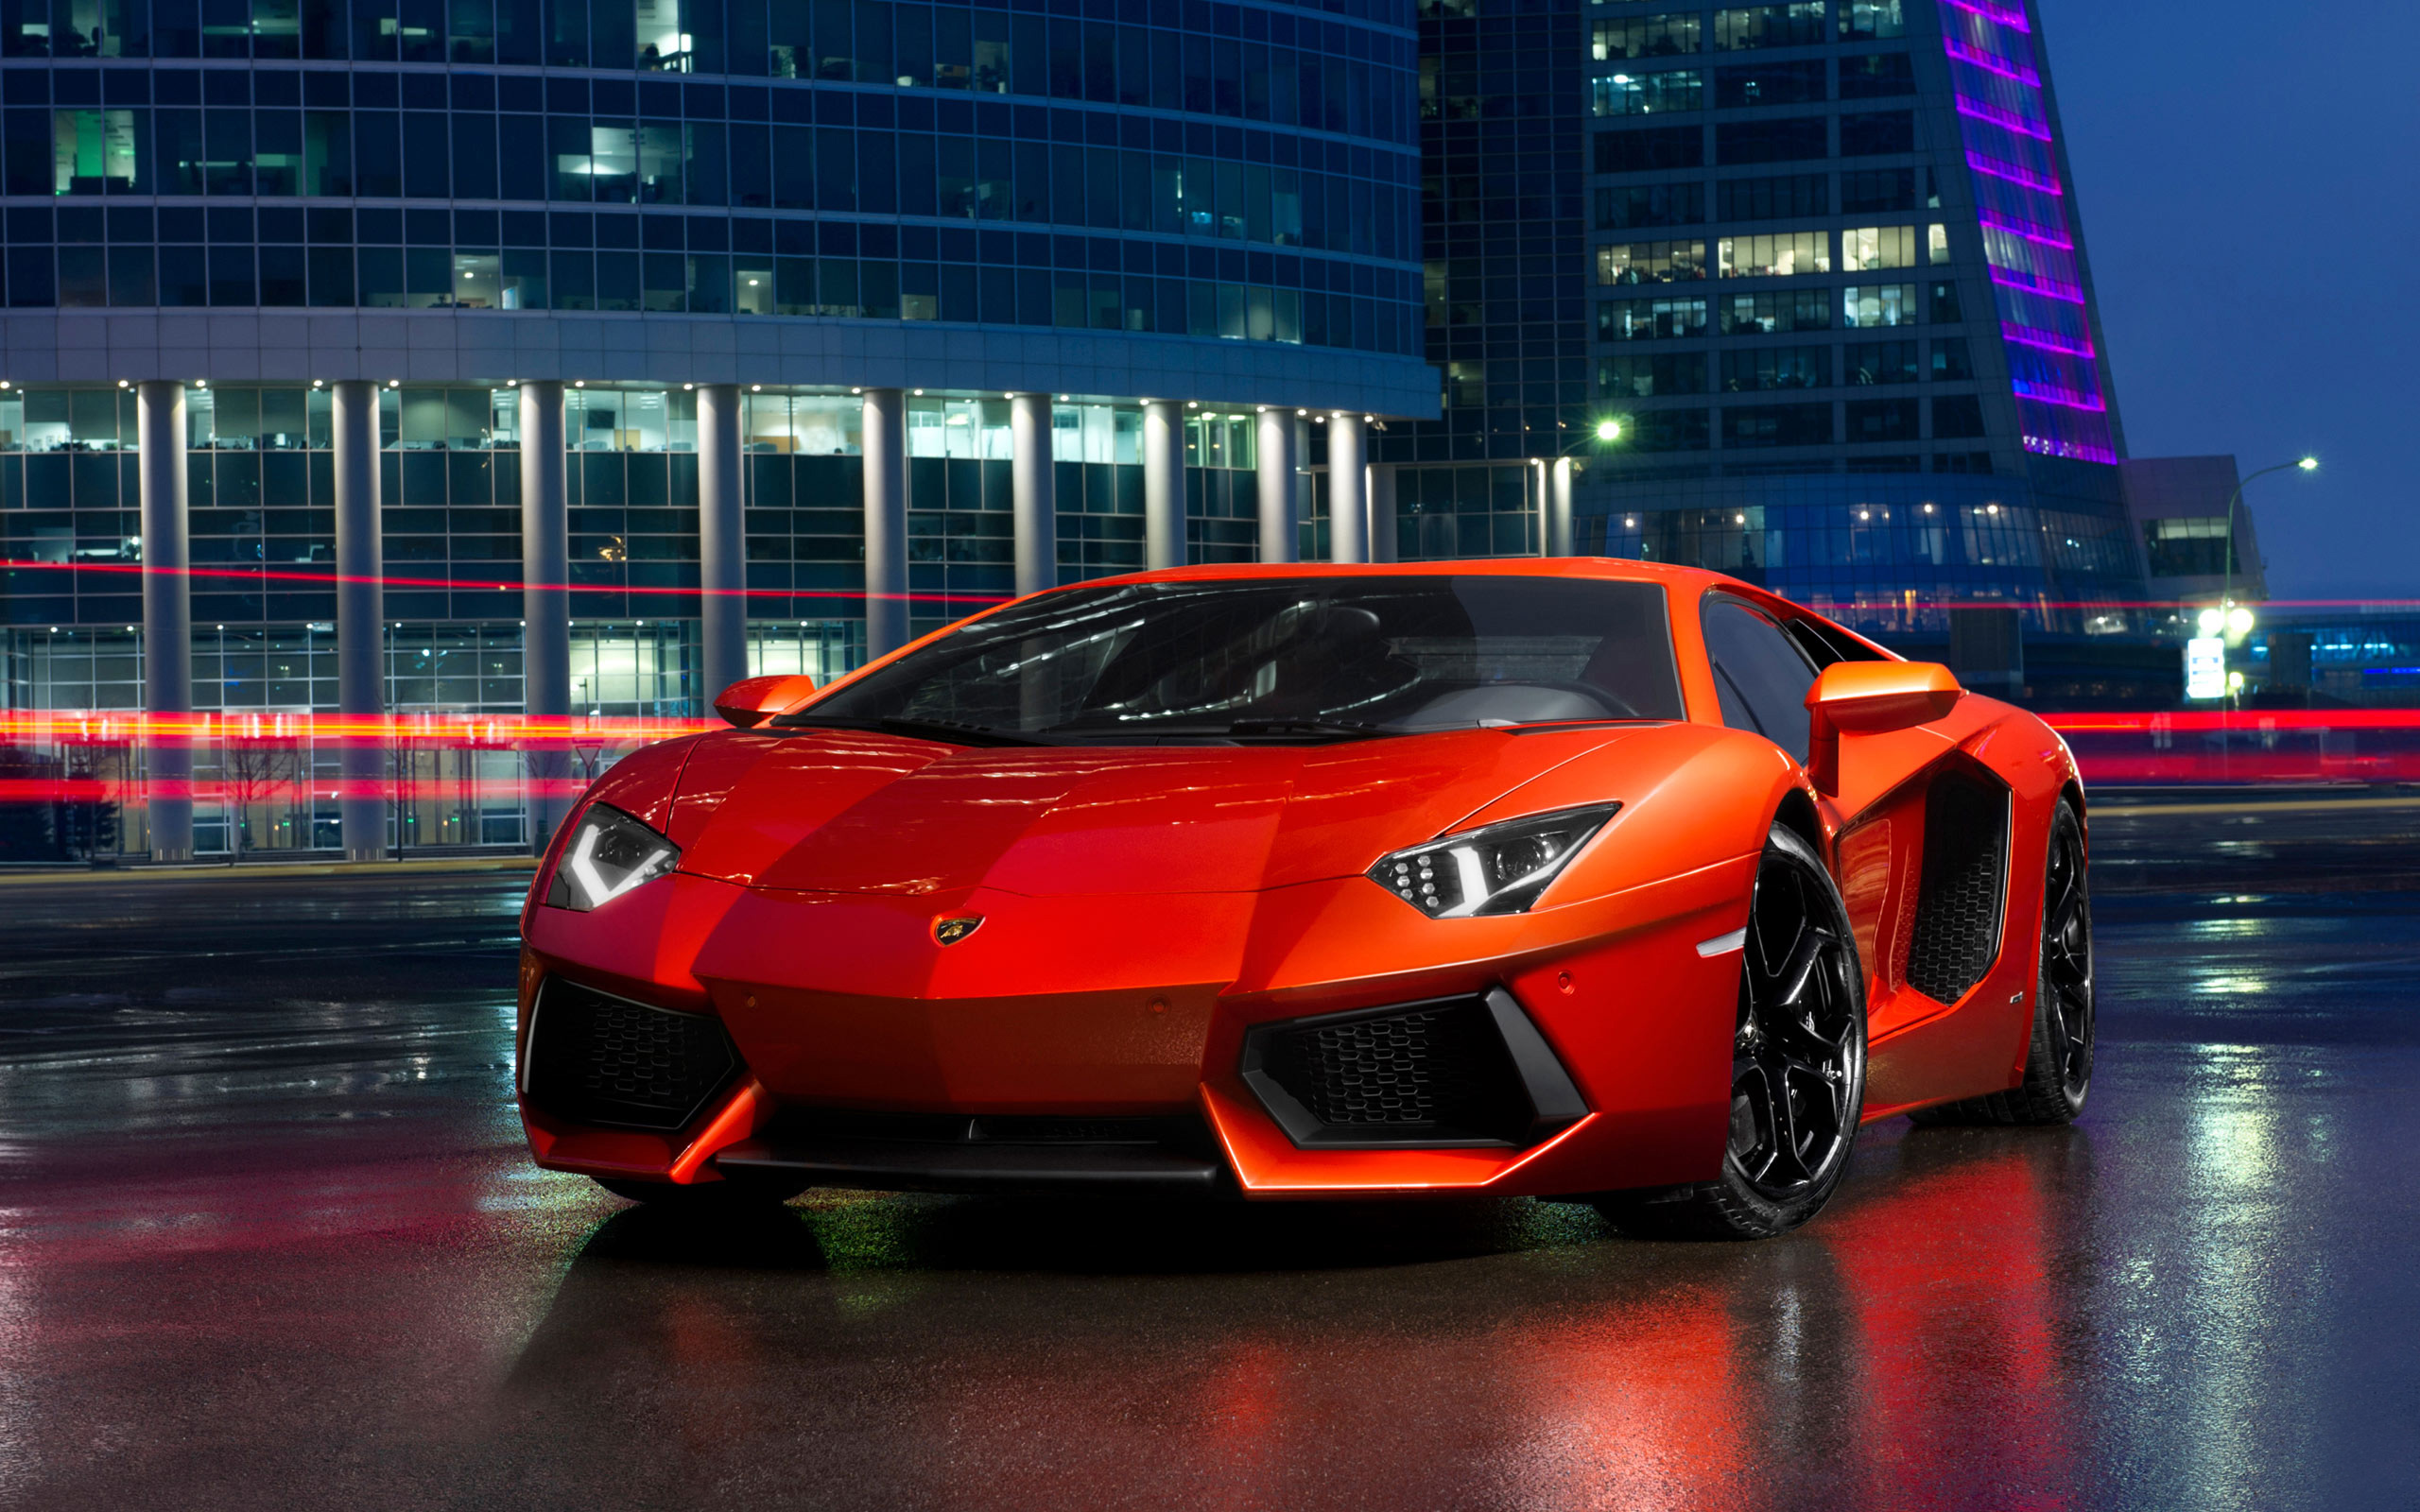 2013 Lamborghini Aventador LP700 4 Wallpapers HD Wallpapers 2560x1600